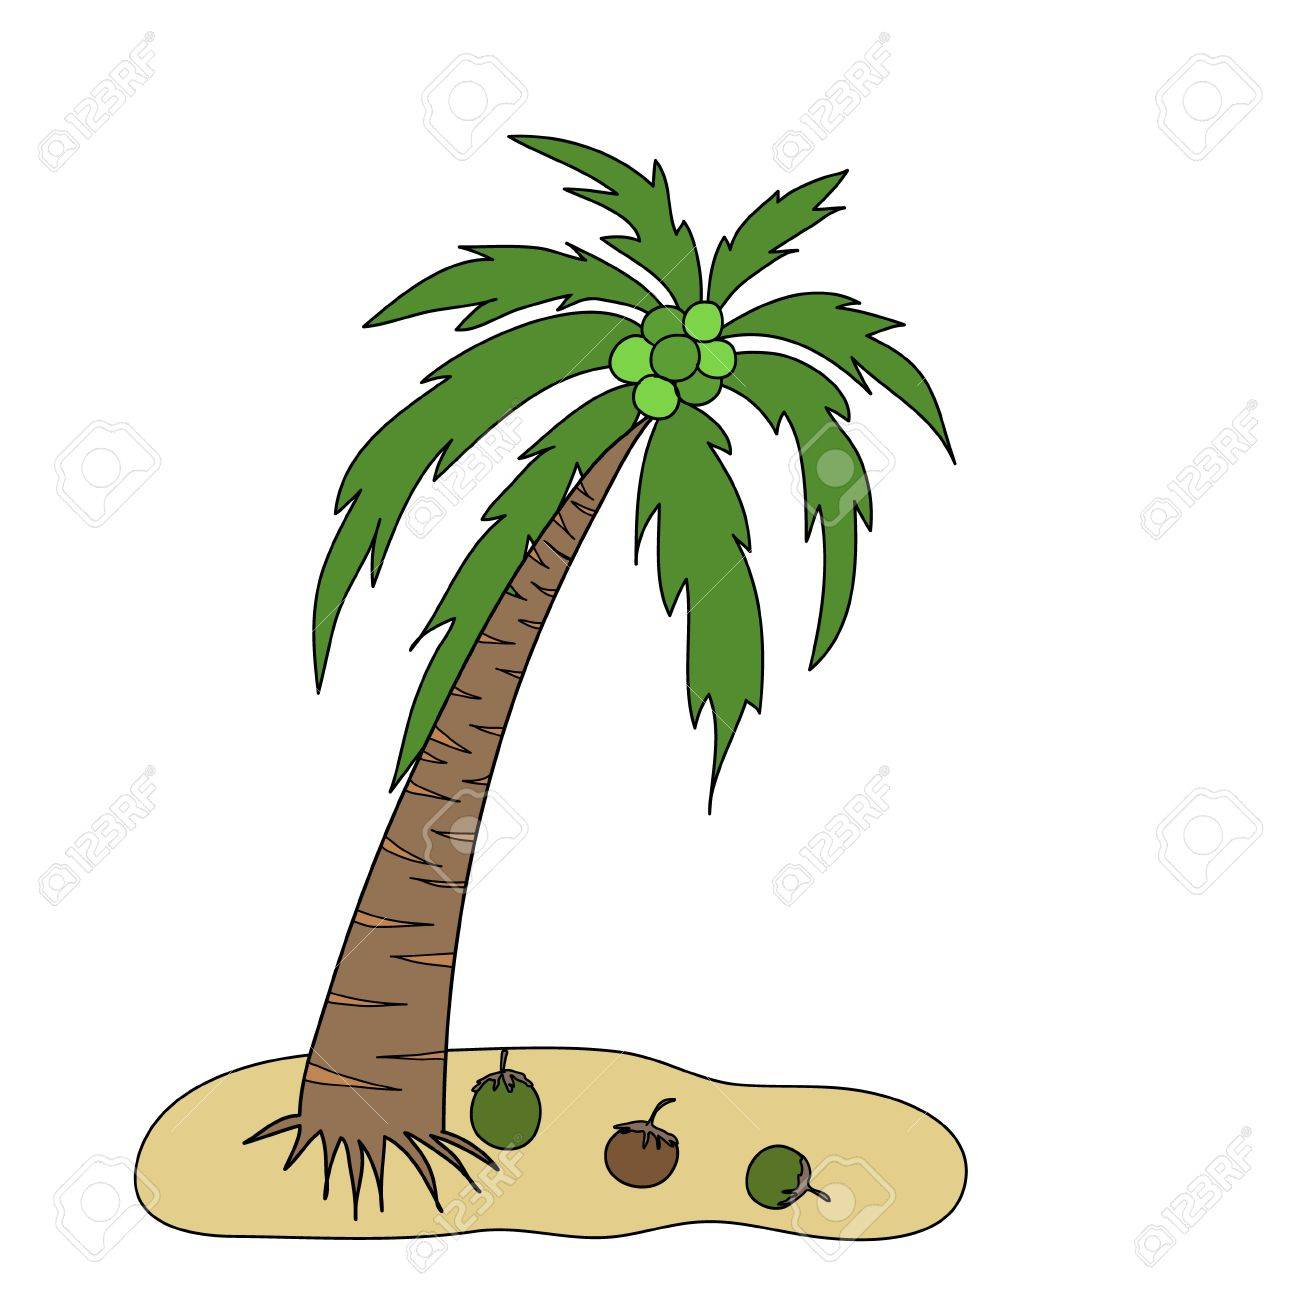 Coconut Tree Is On A Small Island With Three Cocoanuts Royalty Free ...